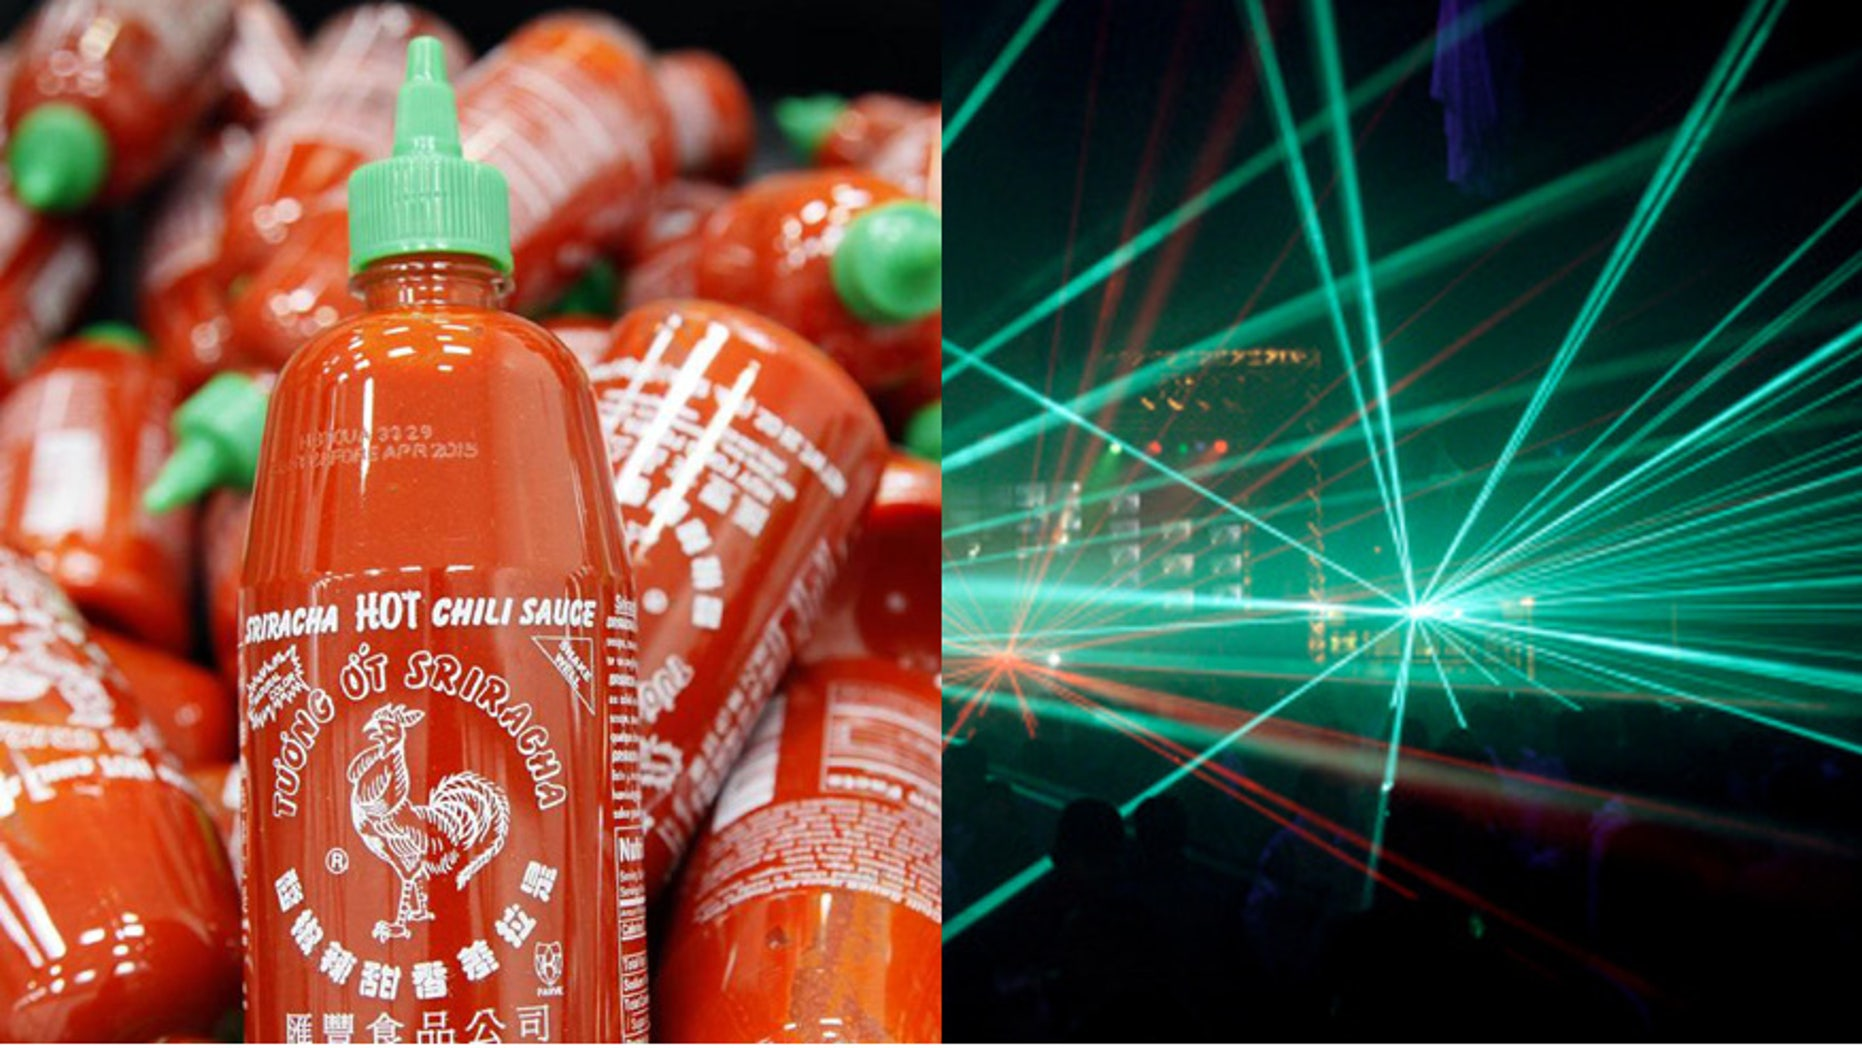 A new way to enjoy Sriracha.